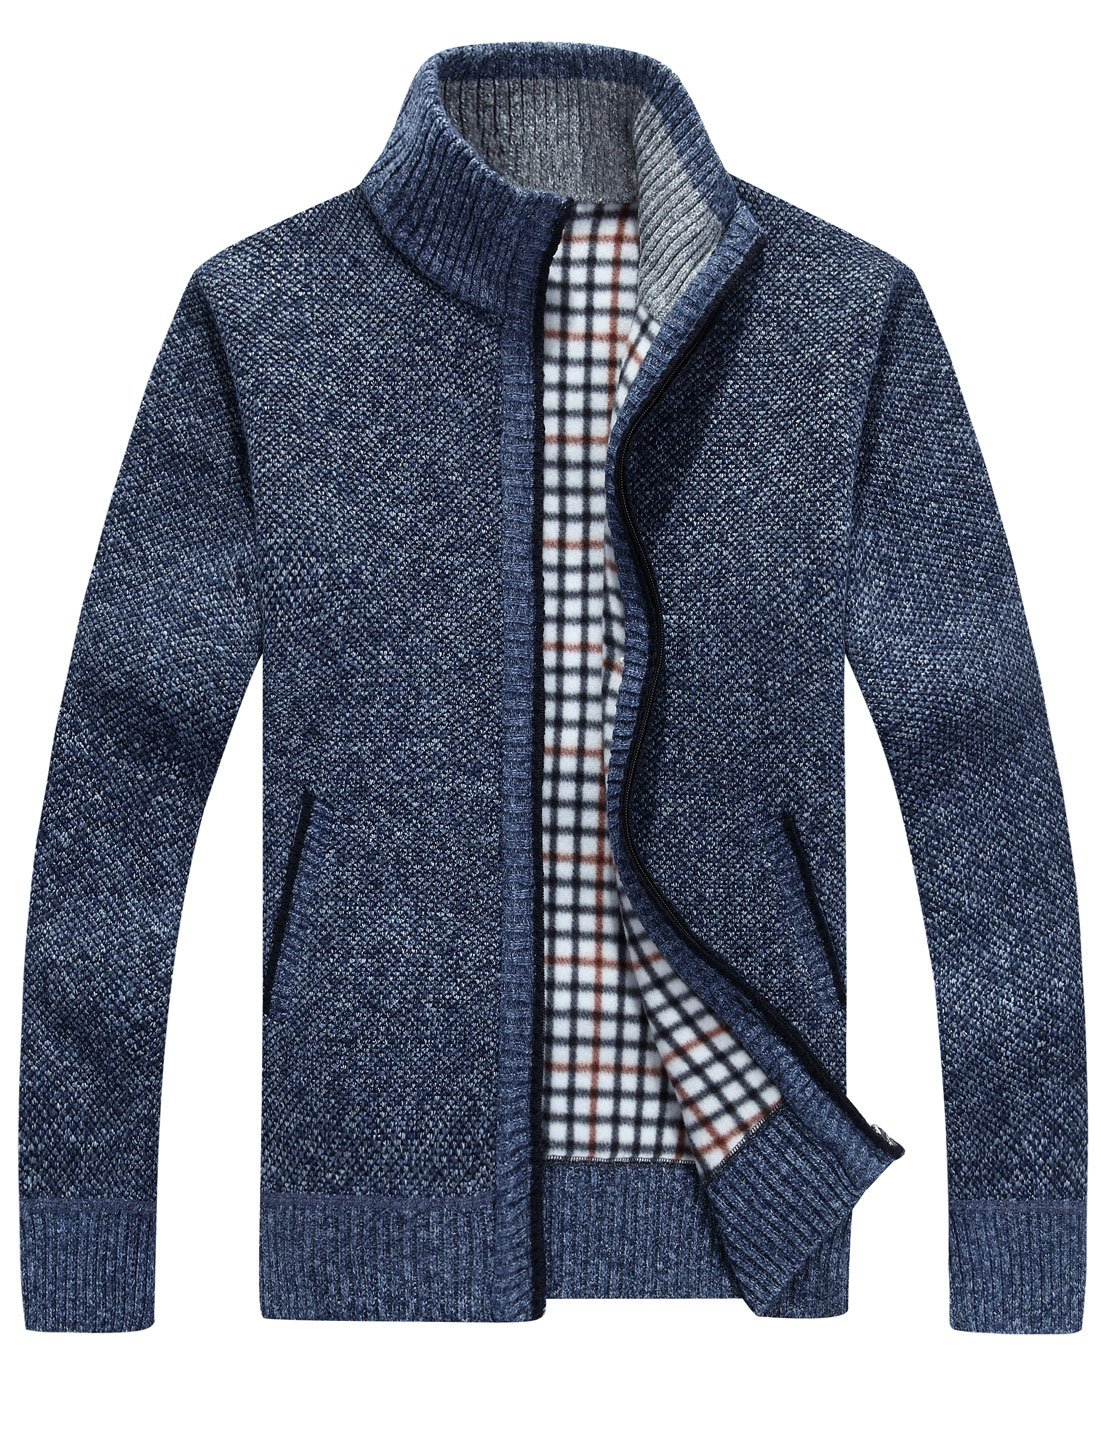 Yeokou Men's Casual Slim Full Zip Thick Knitted Cardigan Sweaters with Pockets (Small, Blue)